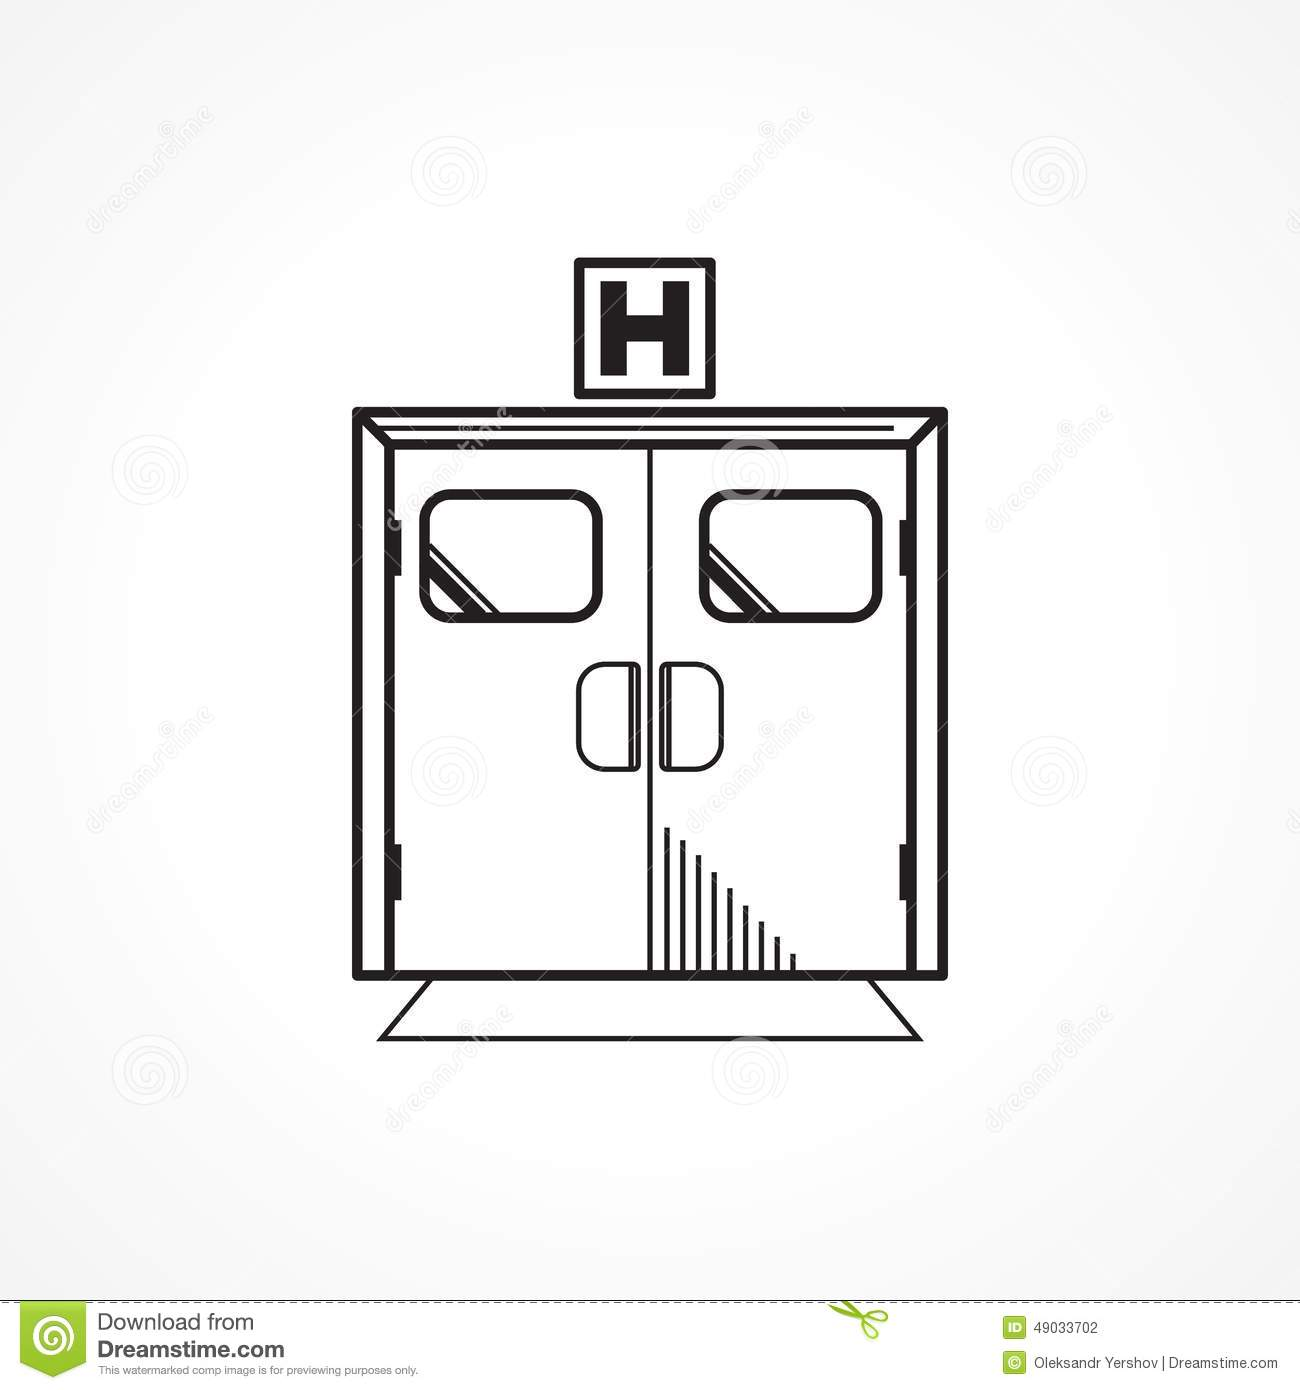 Black line icon for hospital entrance door stock photo for Flat entry door design